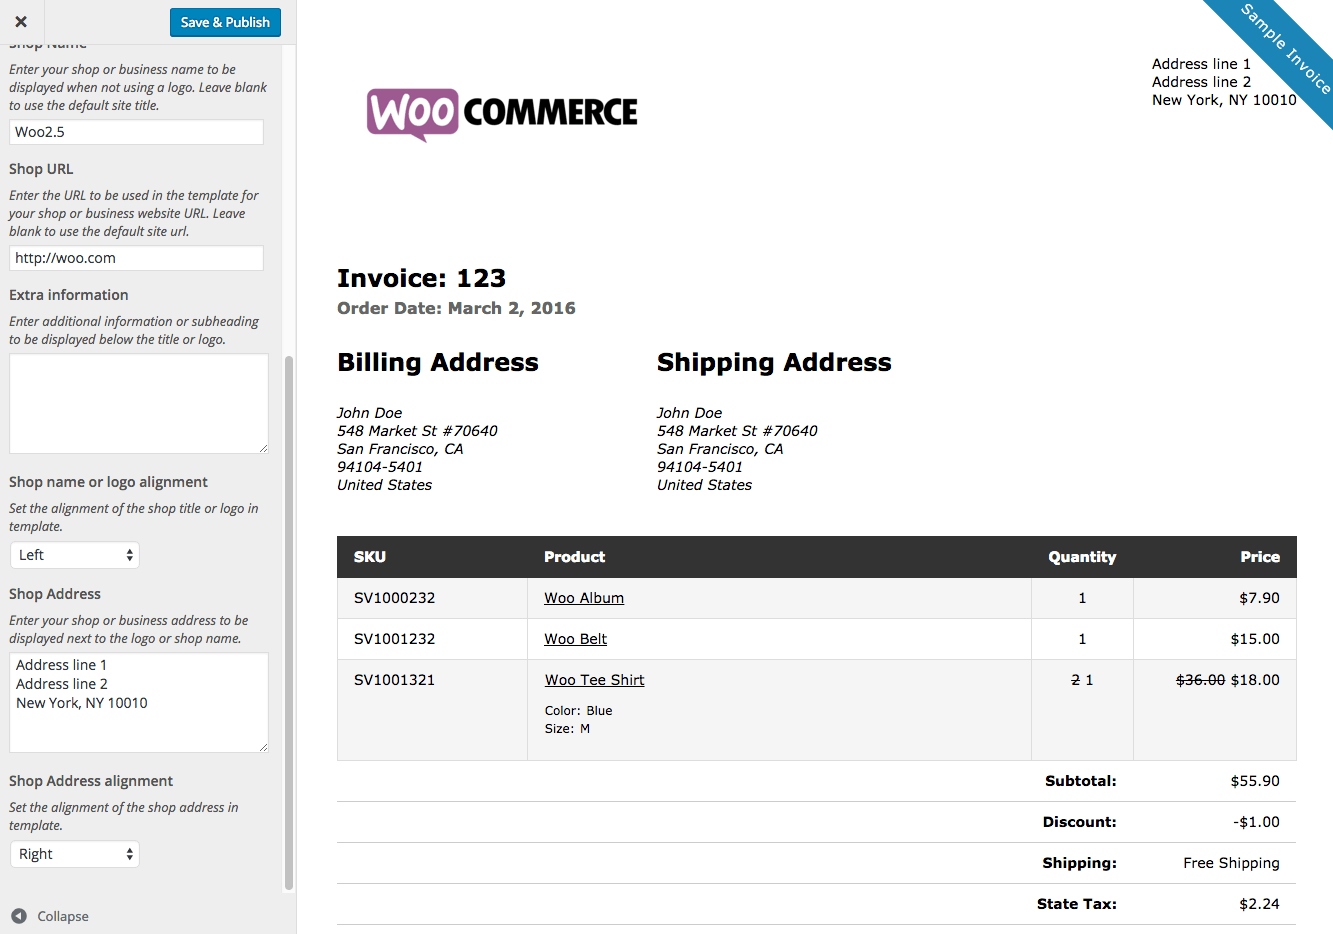 Pigbrotherus  Prepossessing Woocommerce Print Invoices Amp Packing Lists  Woocommerce Docs With Lovely Woocommerce Print Invoices  Packing Lists Customizer With Extraordinary Open Invoice Login Also Freelance Designer Invoice In Addition How To File Invoices And Business Invoicing As Well As Time Tracking Invoicing Additionally What Is The Invoice From Docswoocommercecom With Pigbrotherus  Lovely Woocommerce Print Invoices Amp Packing Lists  Woocommerce Docs With Extraordinary Woocommerce Print Invoices  Packing Lists Customizer And Prepossessing Open Invoice Login Also Freelance Designer Invoice In Addition How To File Invoices From Docswoocommercecom